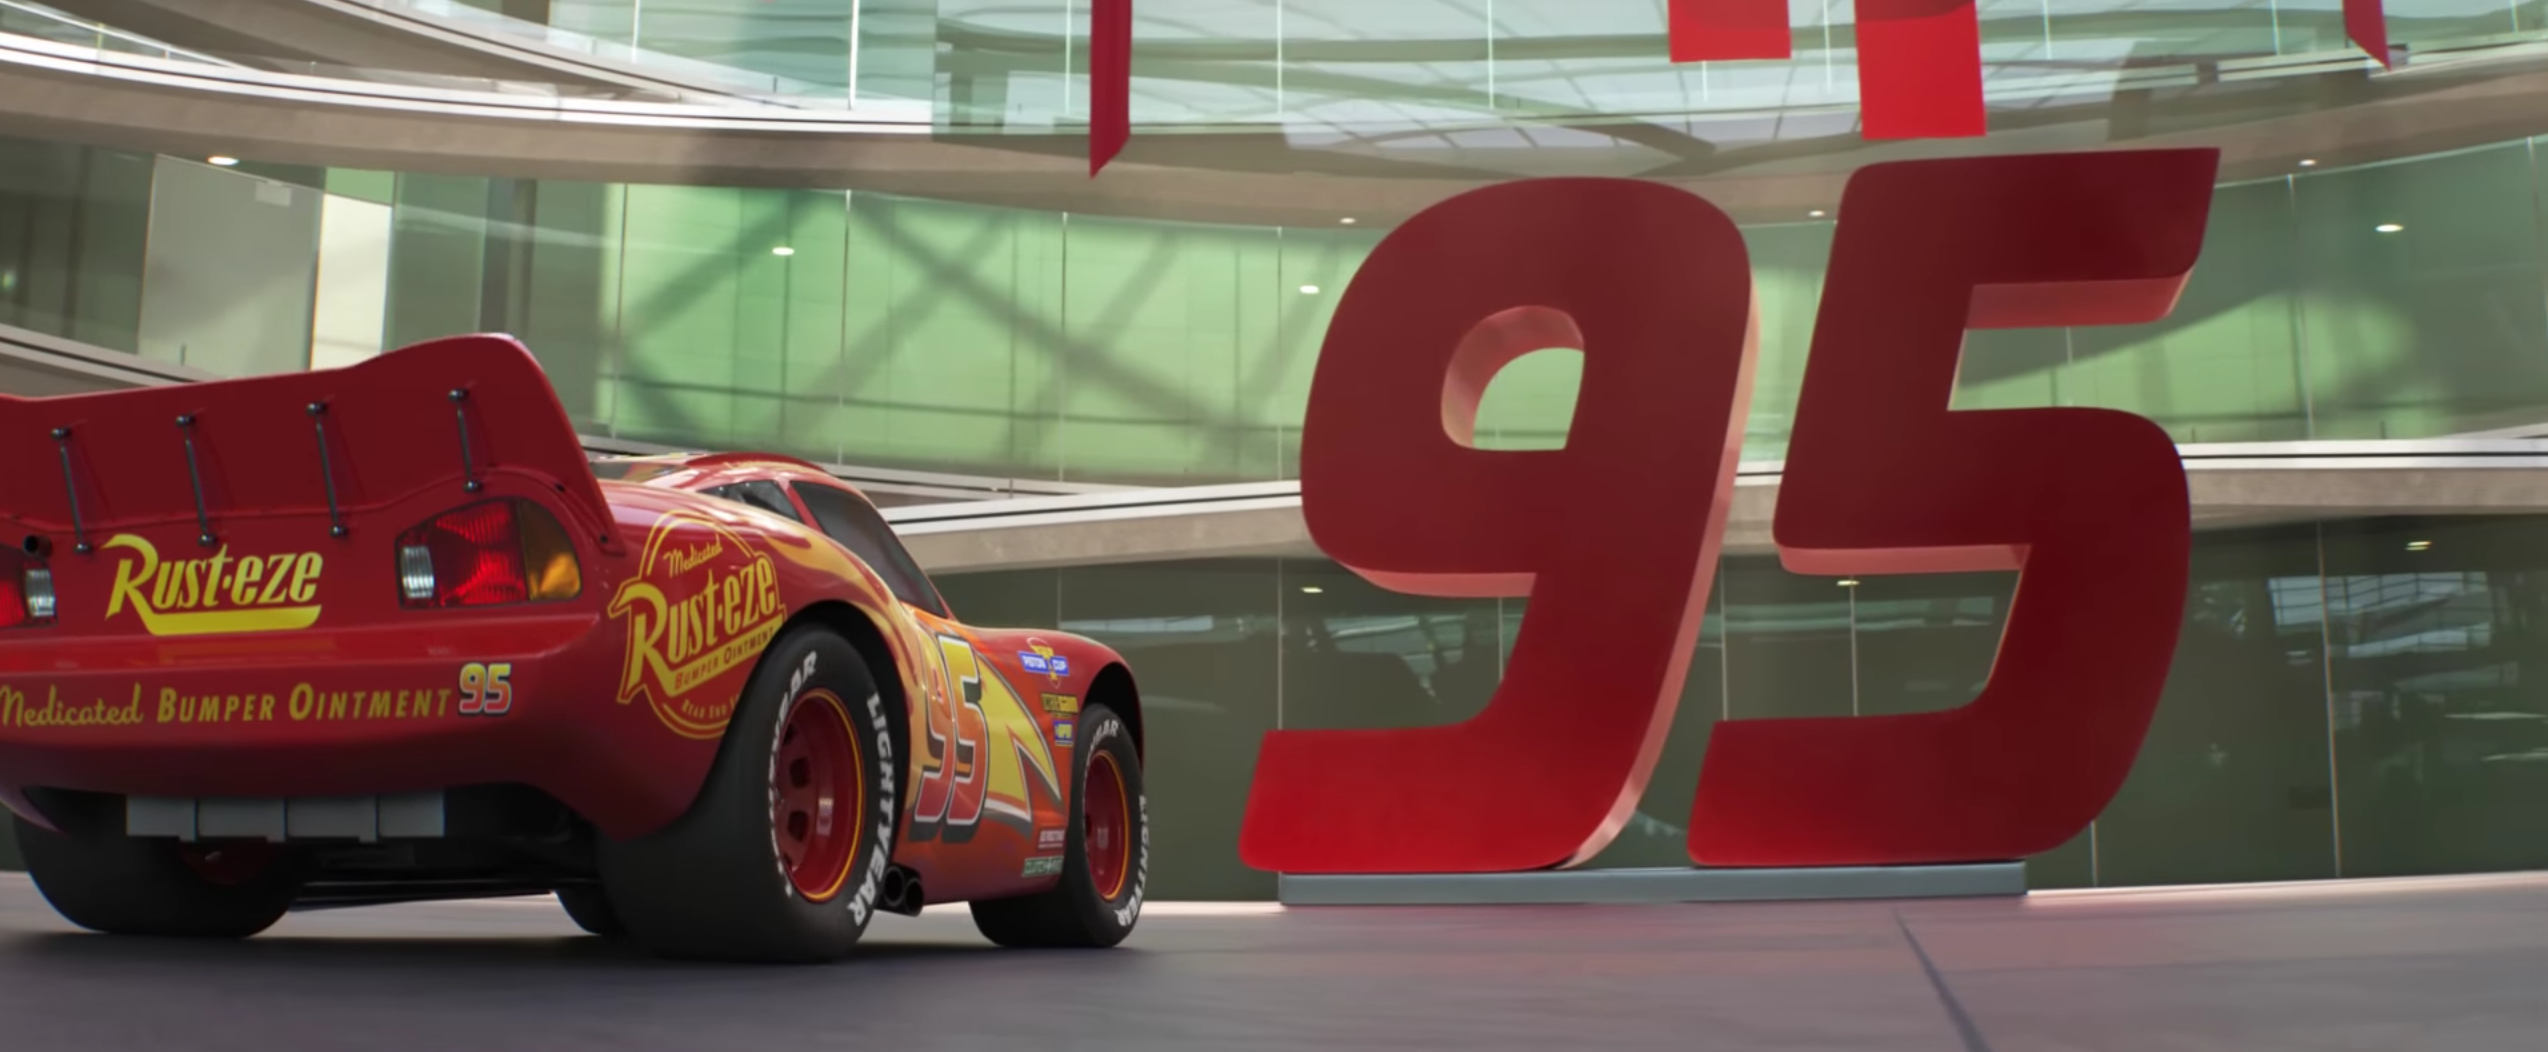 New teaser for 'Cars 3' boasts a gritty turn for the Pixar franchise